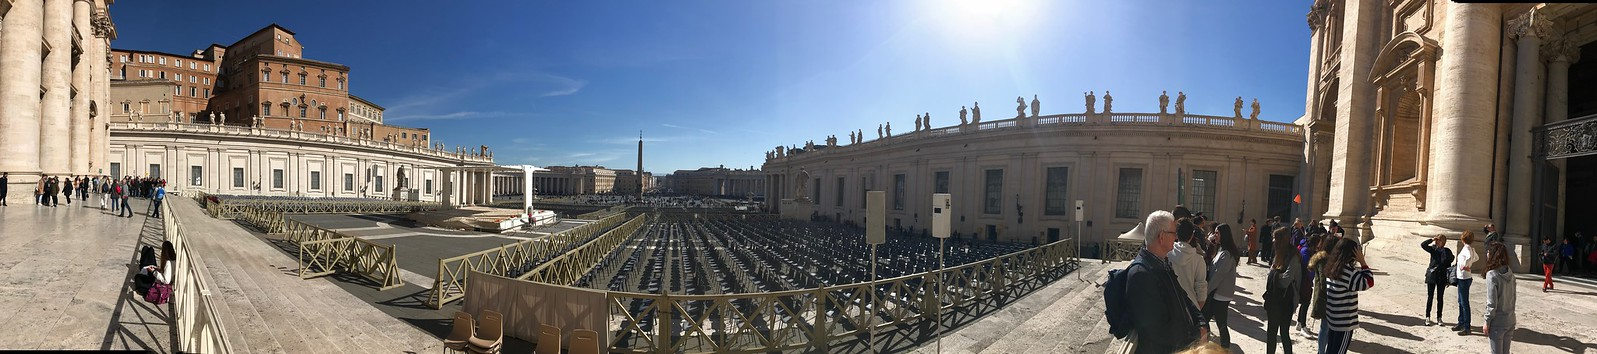 Panoramic Photo of St Peter's Square, Rome, Italy